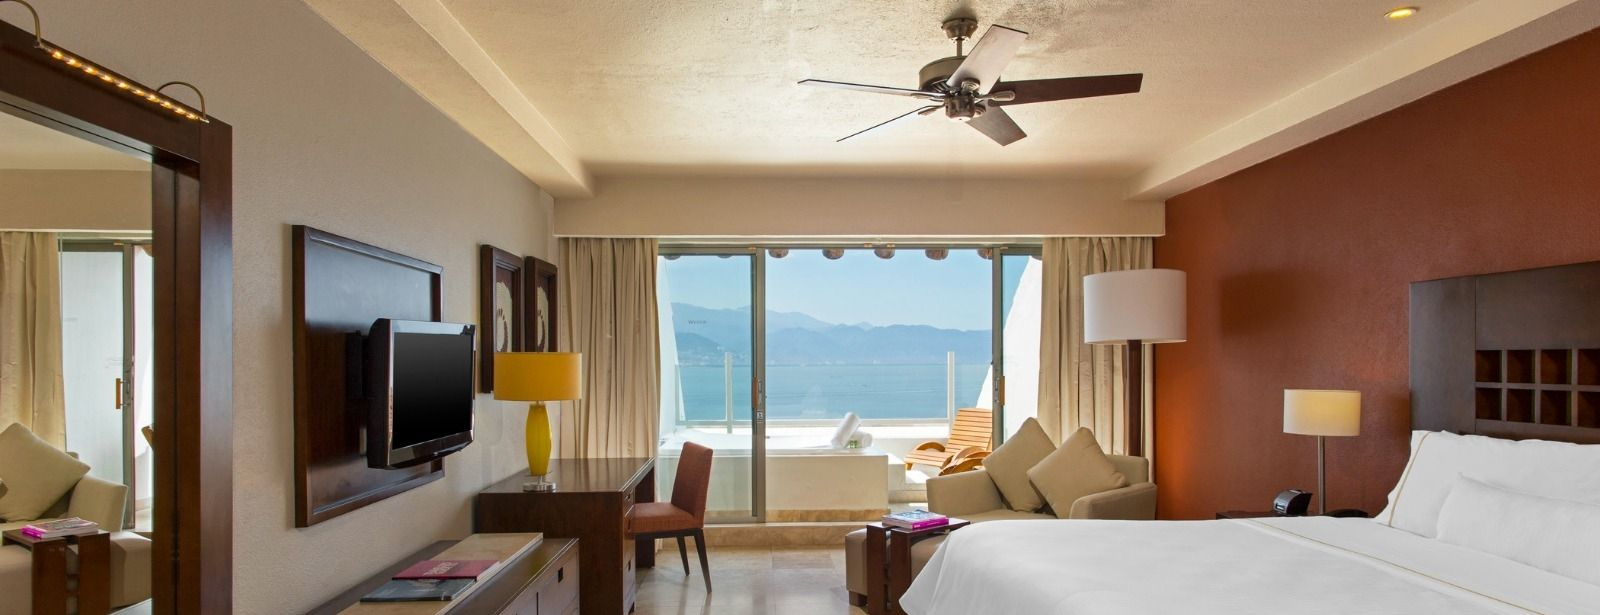 Royal Beach Club Room - The Westin Resort & Spa, Puerto Vallarta